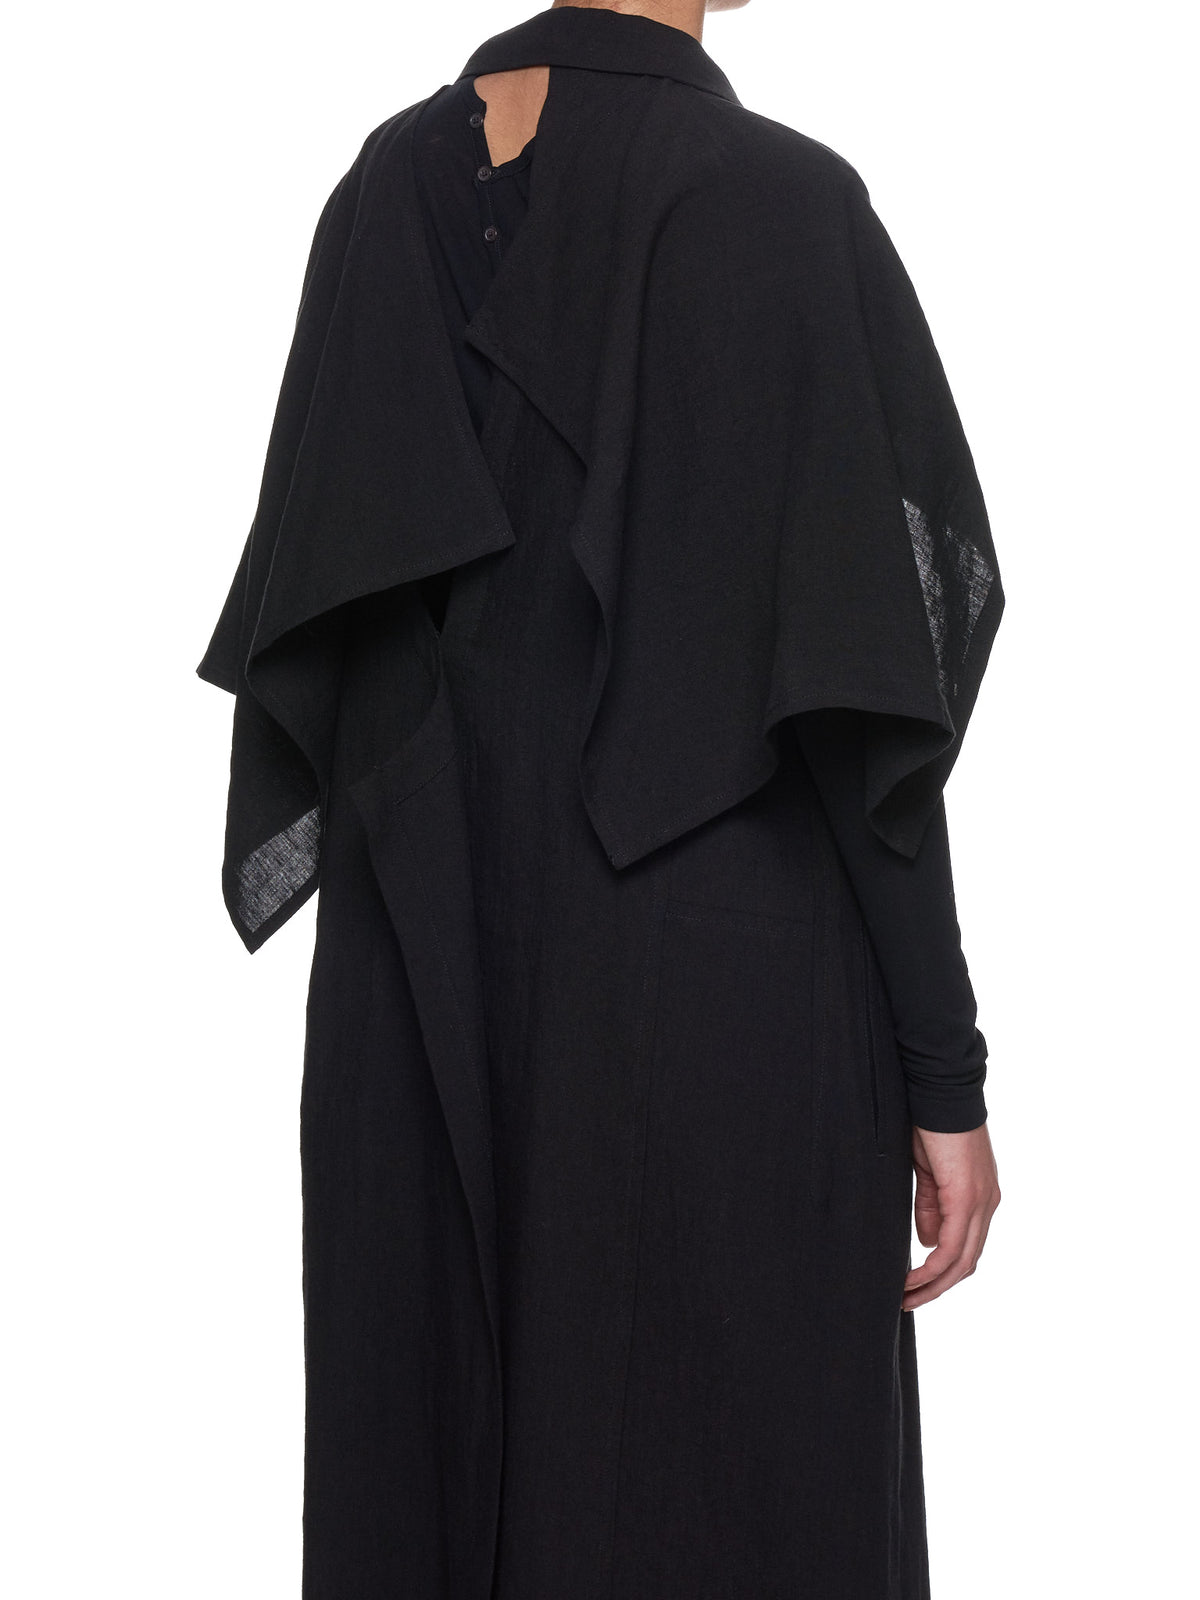 Short-Sleeve Duster Coat (FH-C09-300-BLACK)